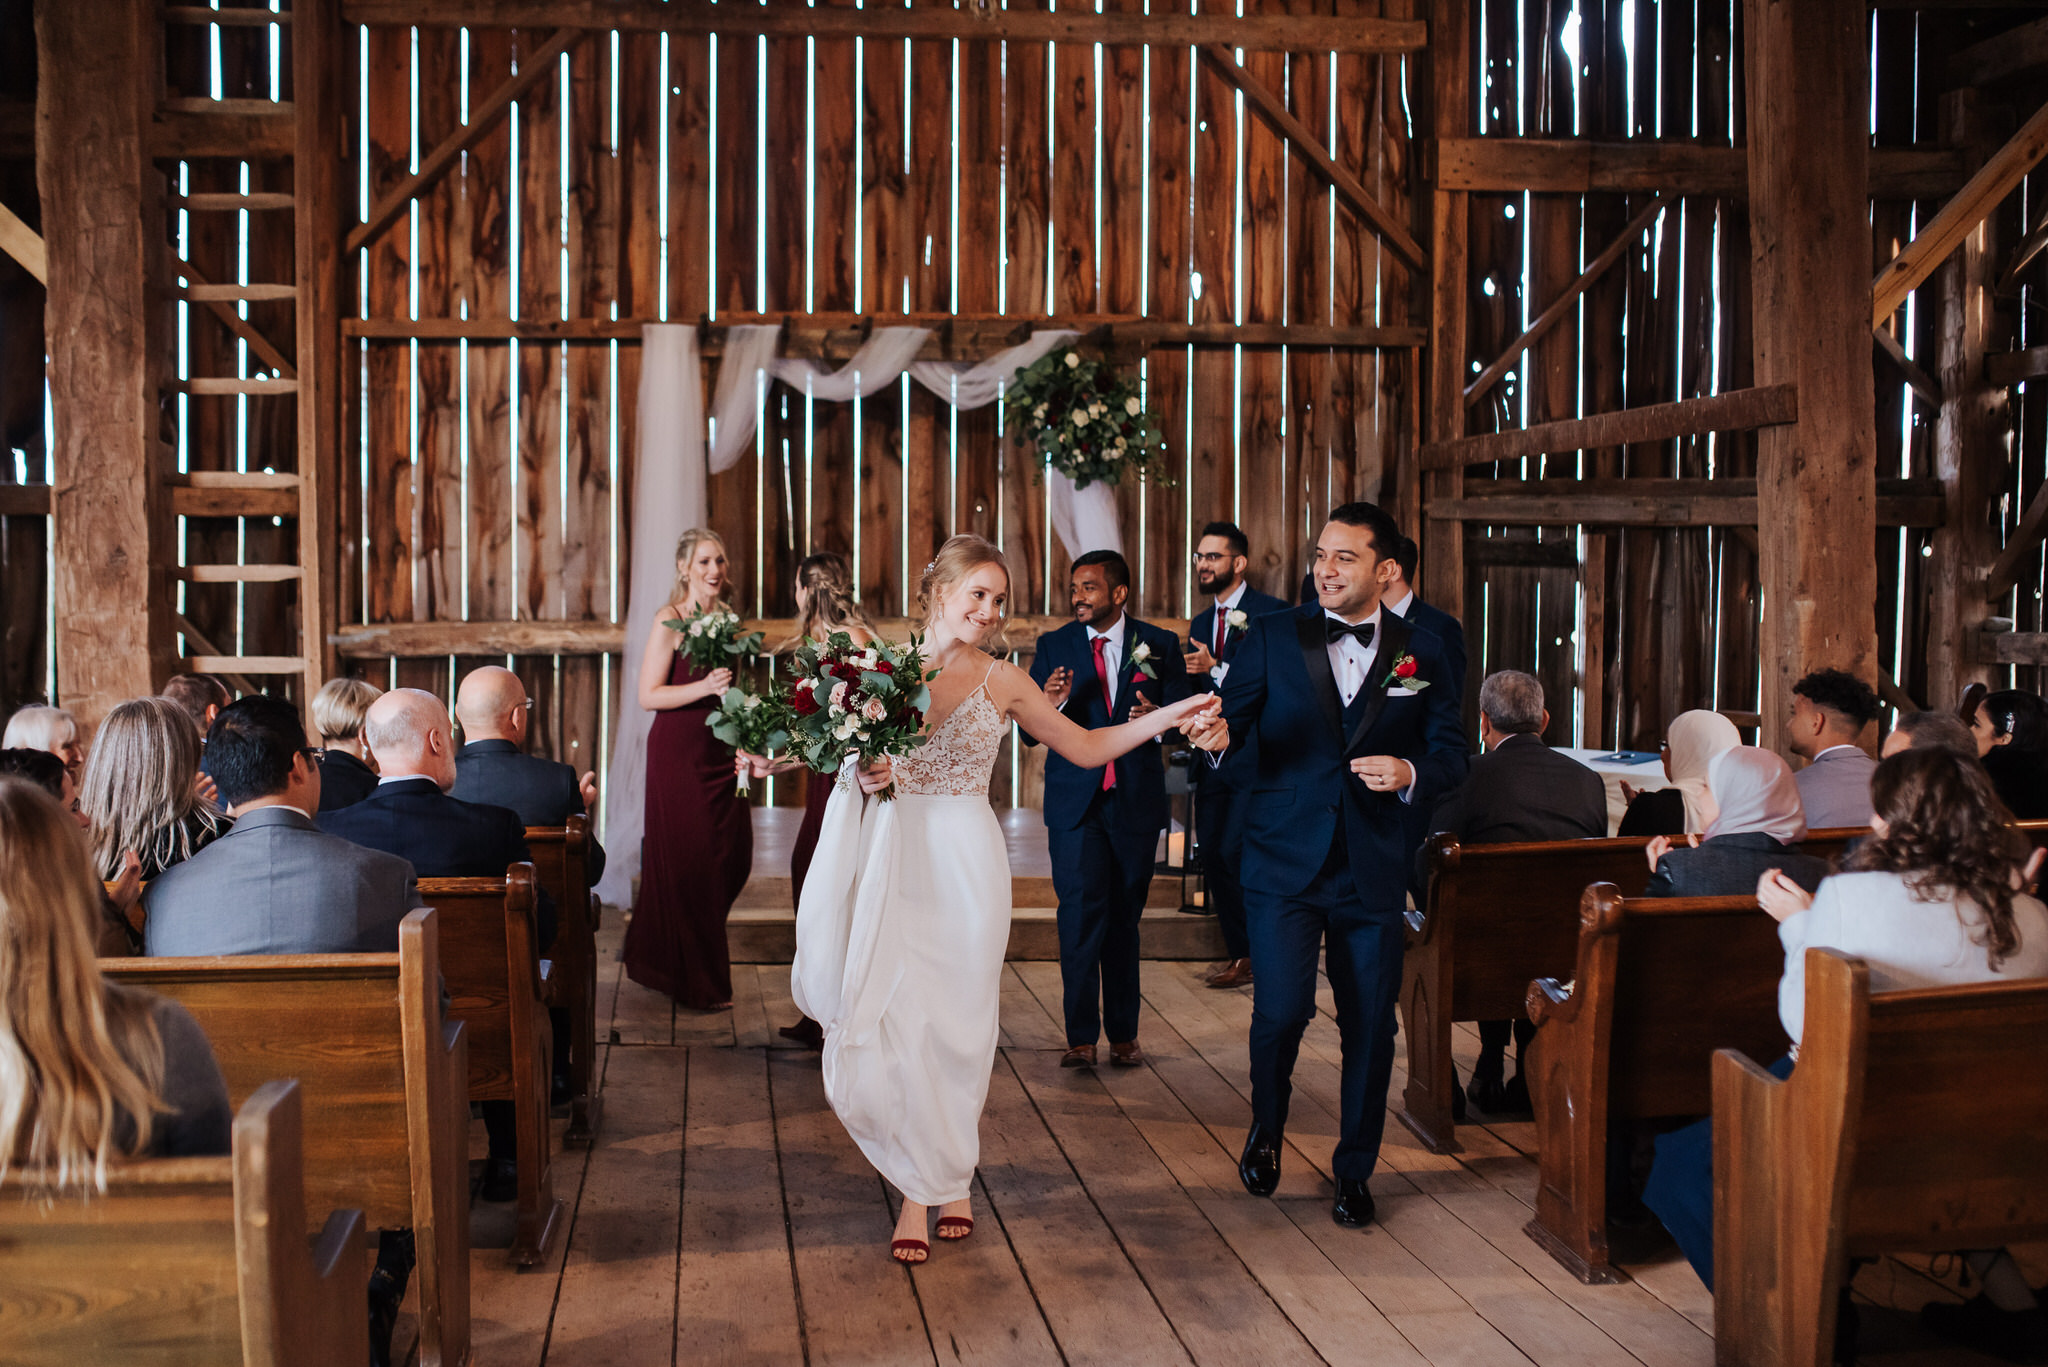 Waterstone Estate & Farms Wedding - newlyweds